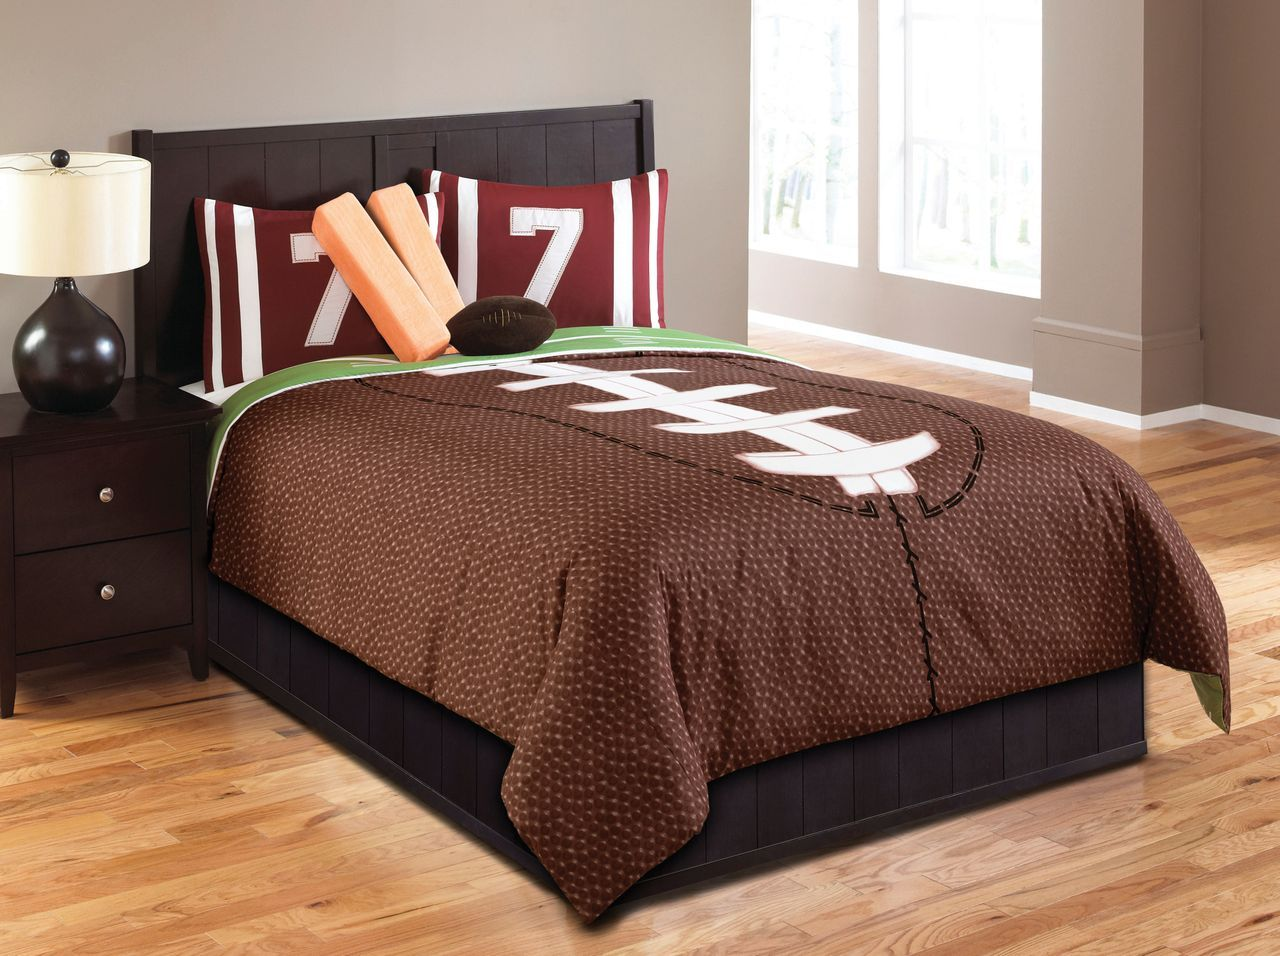 Boys sports bedding - Hallmart Kids Touchdown Boys Comforter Set Teen Boys Sports Bedding Boys Bedding Football